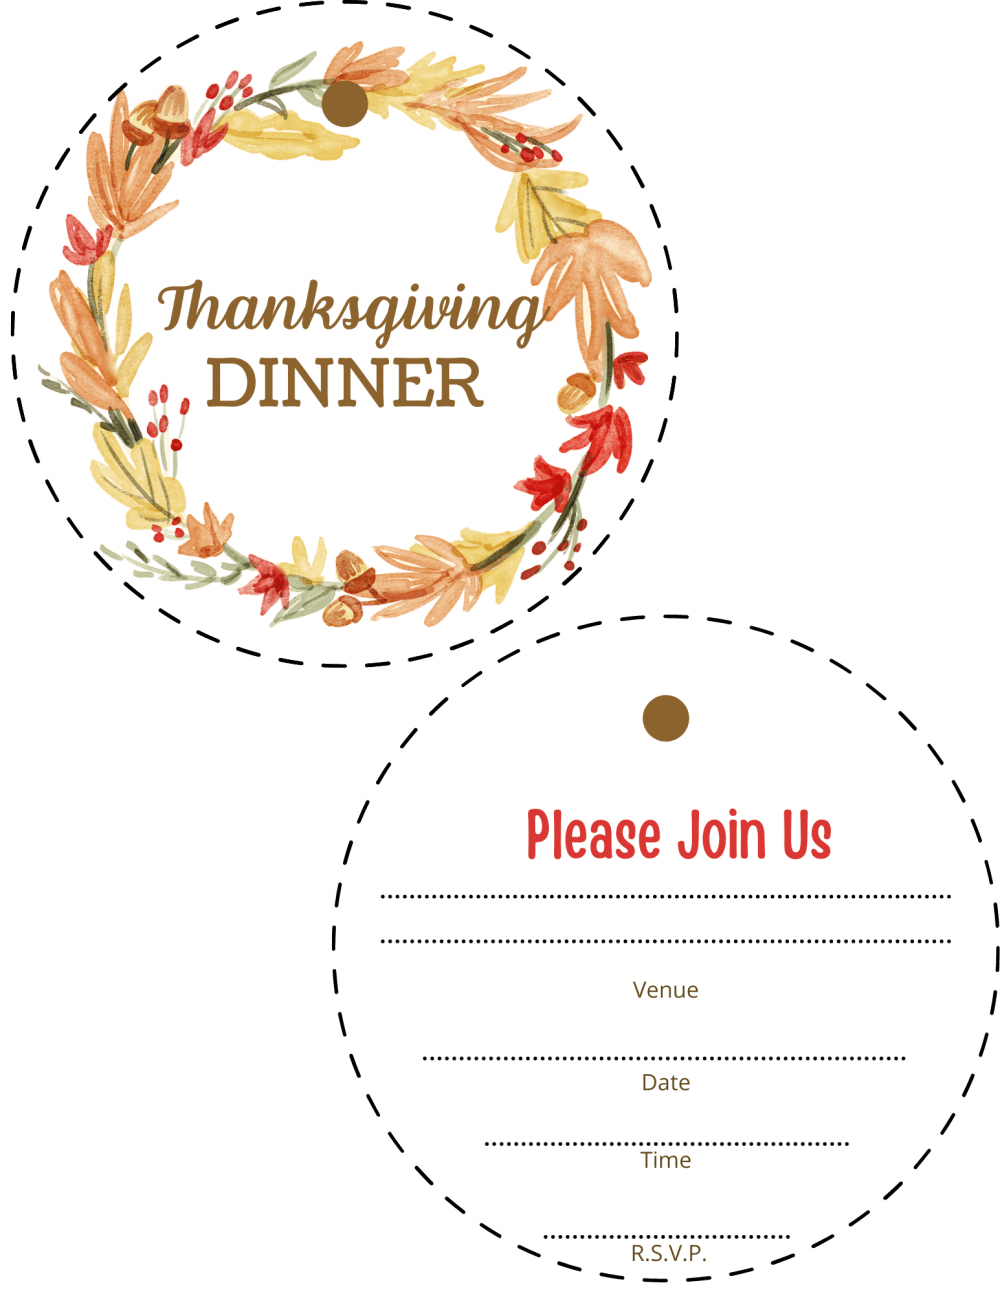 Image of back and front pages of Thanksgiving dinner invitations printable